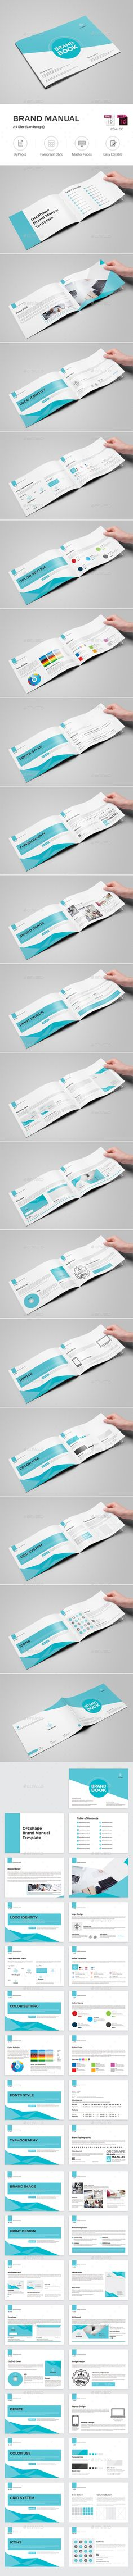 51 best Brand Style Guide Template & Design images on Pinterest in ...